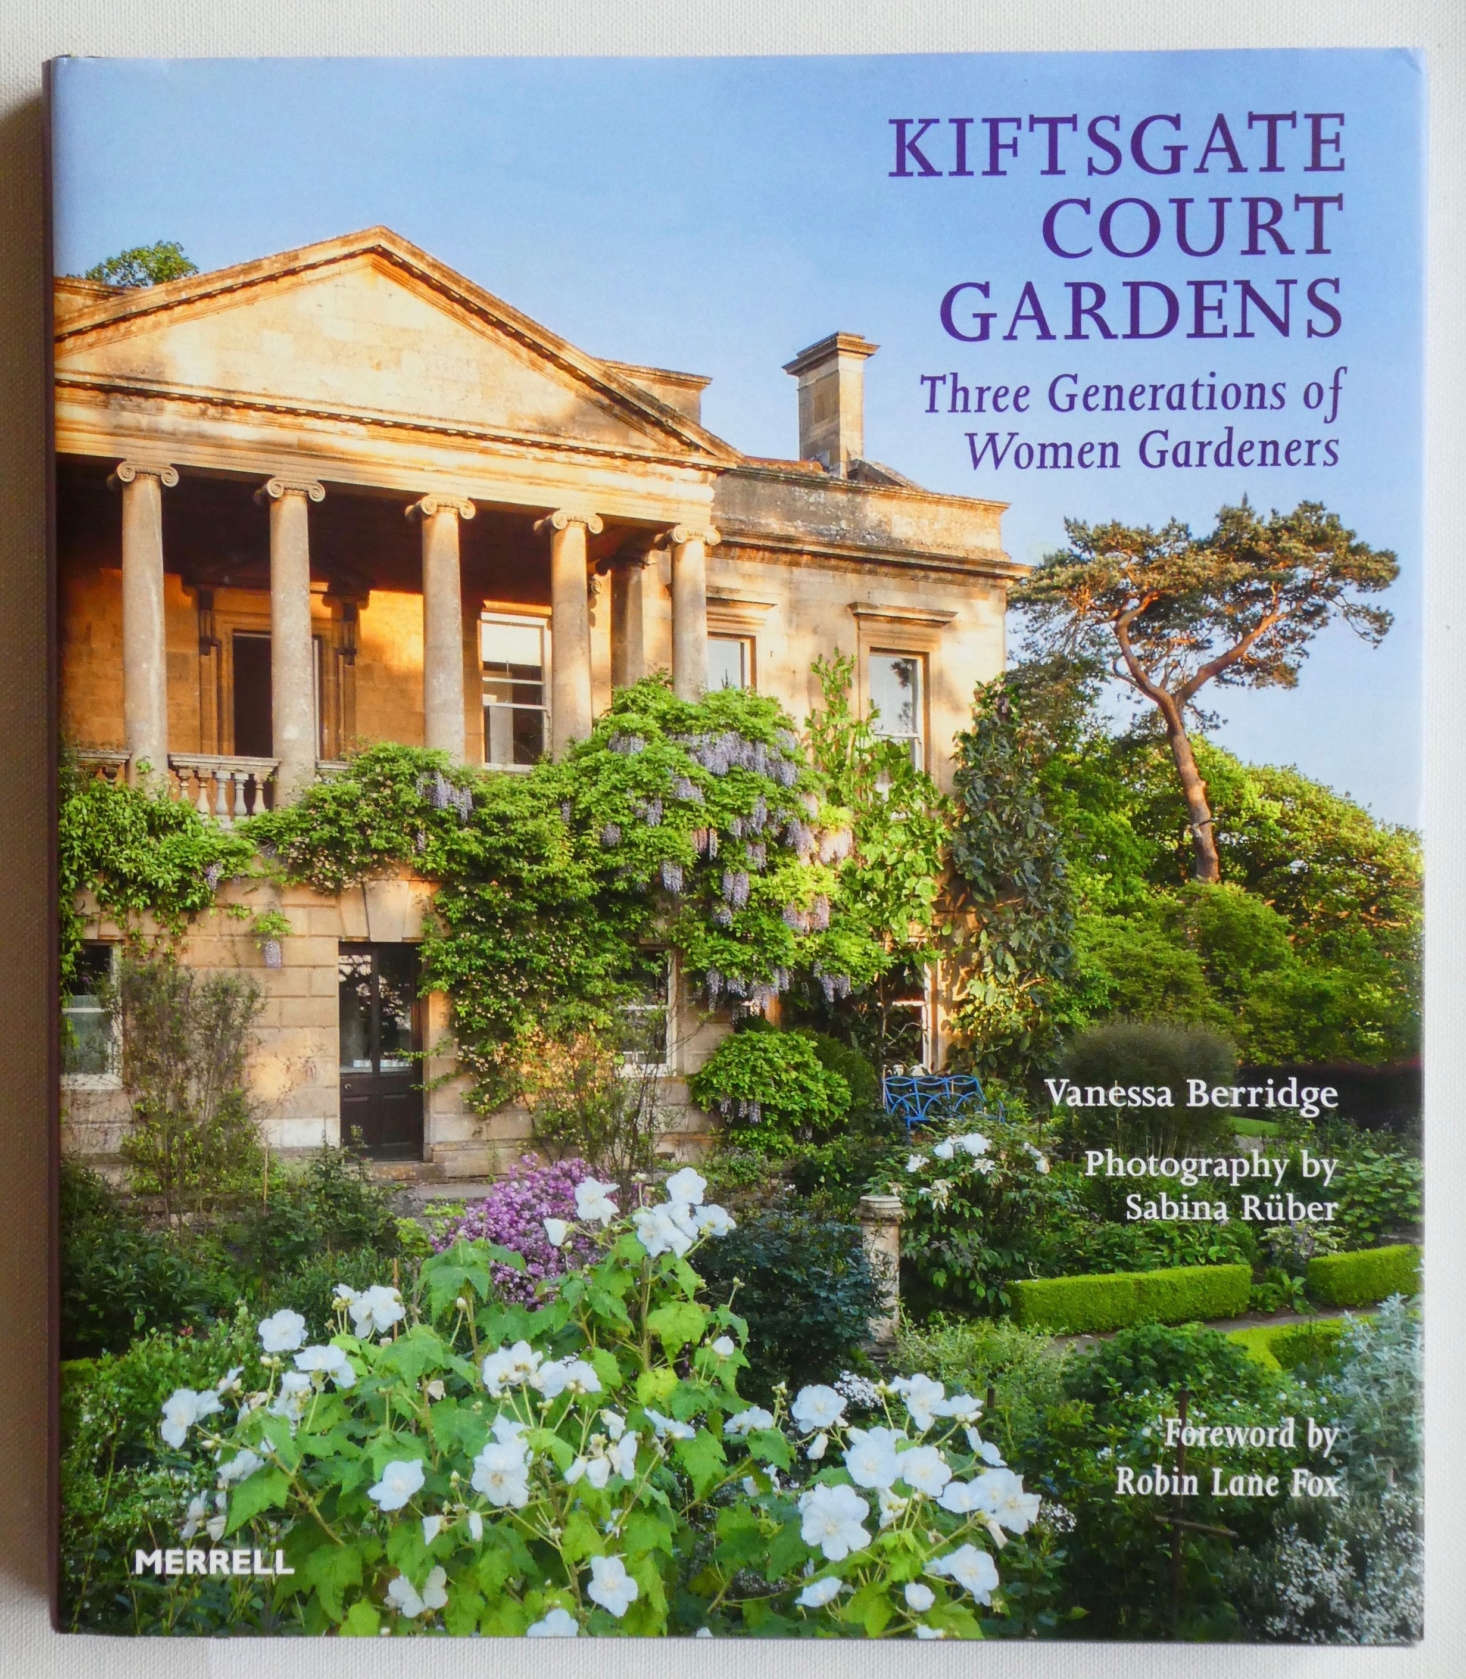 Kiftsgate Court Gardens: Three Generations of Women Gardeners, which goes on sale today, is £40 from Amazon UK. For US readers, it will be available for$43.37 on April 30 from Amazon.